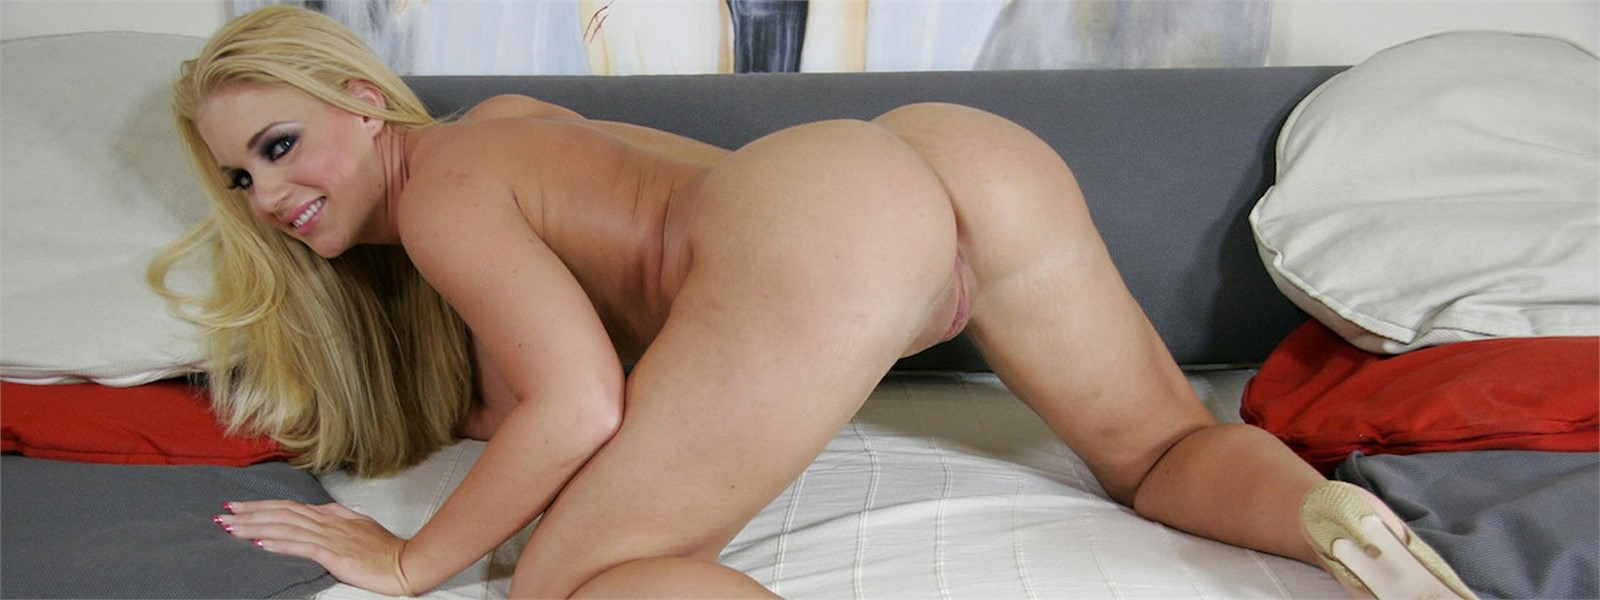 Alexis crystal fucked by two lucky guys